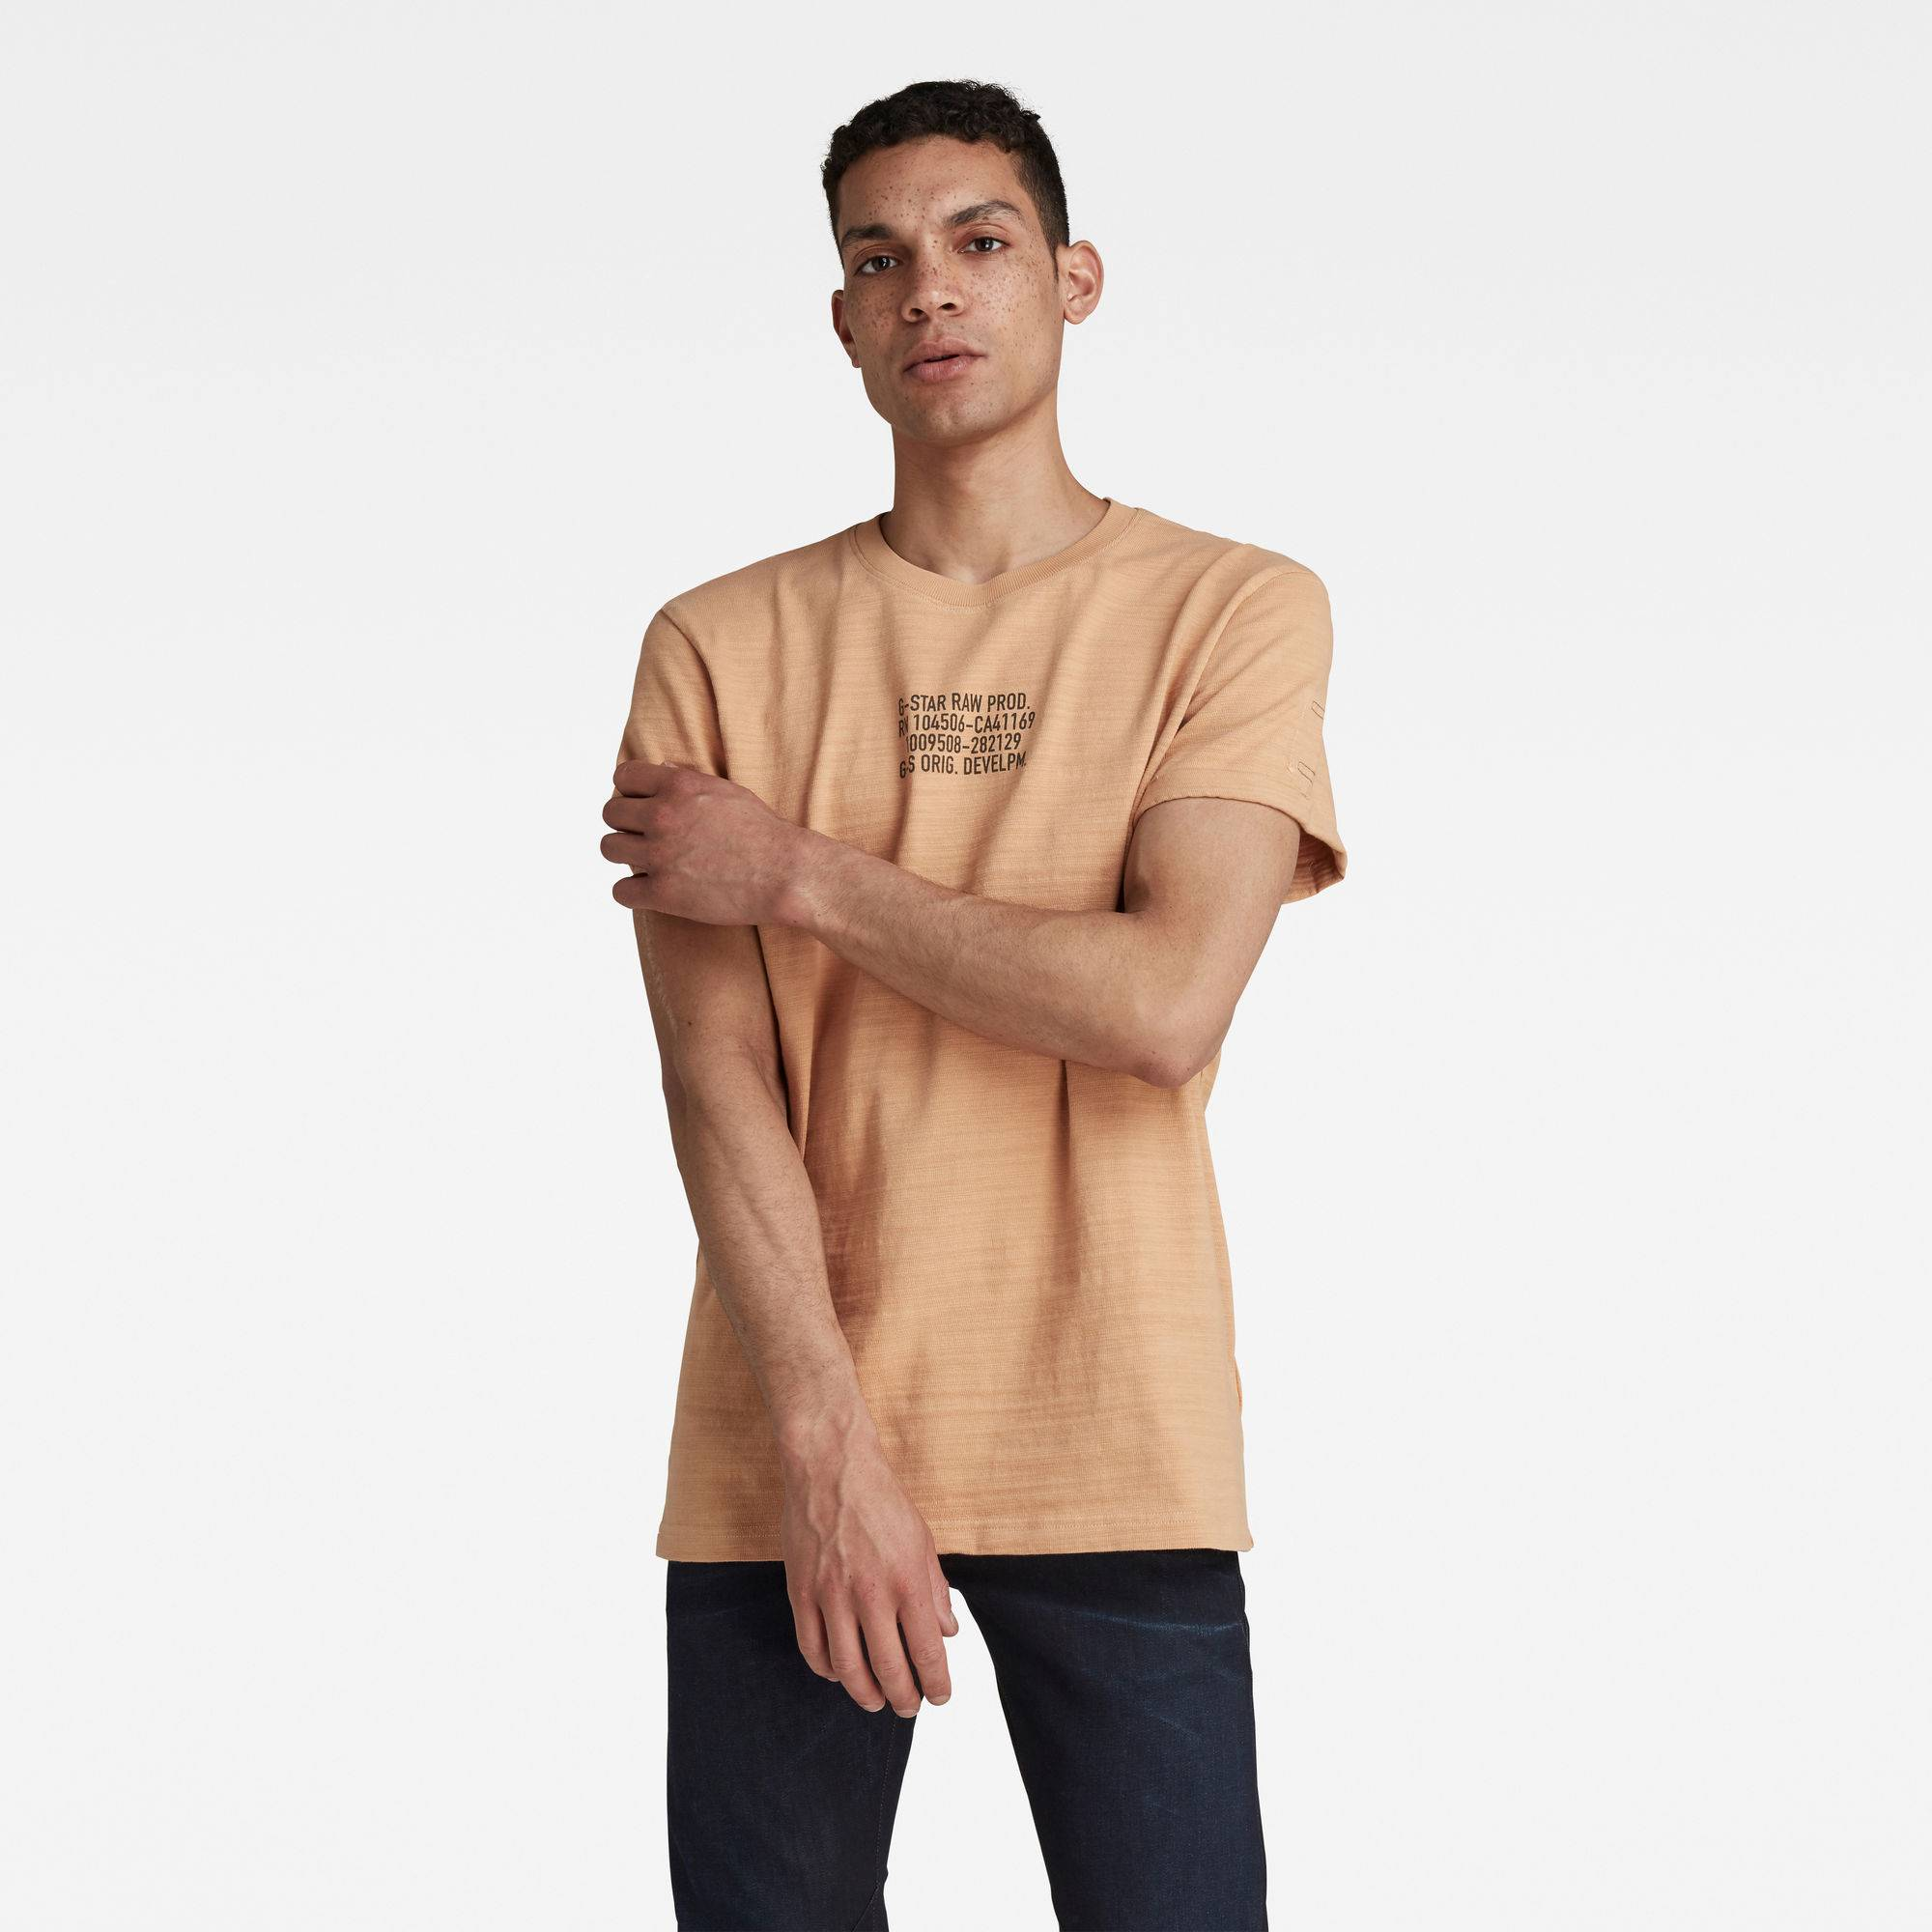 G-star RAW Hommes T-shirt Chest Text Graphic Lash Rose  - Taille: L XXL XS XL S M